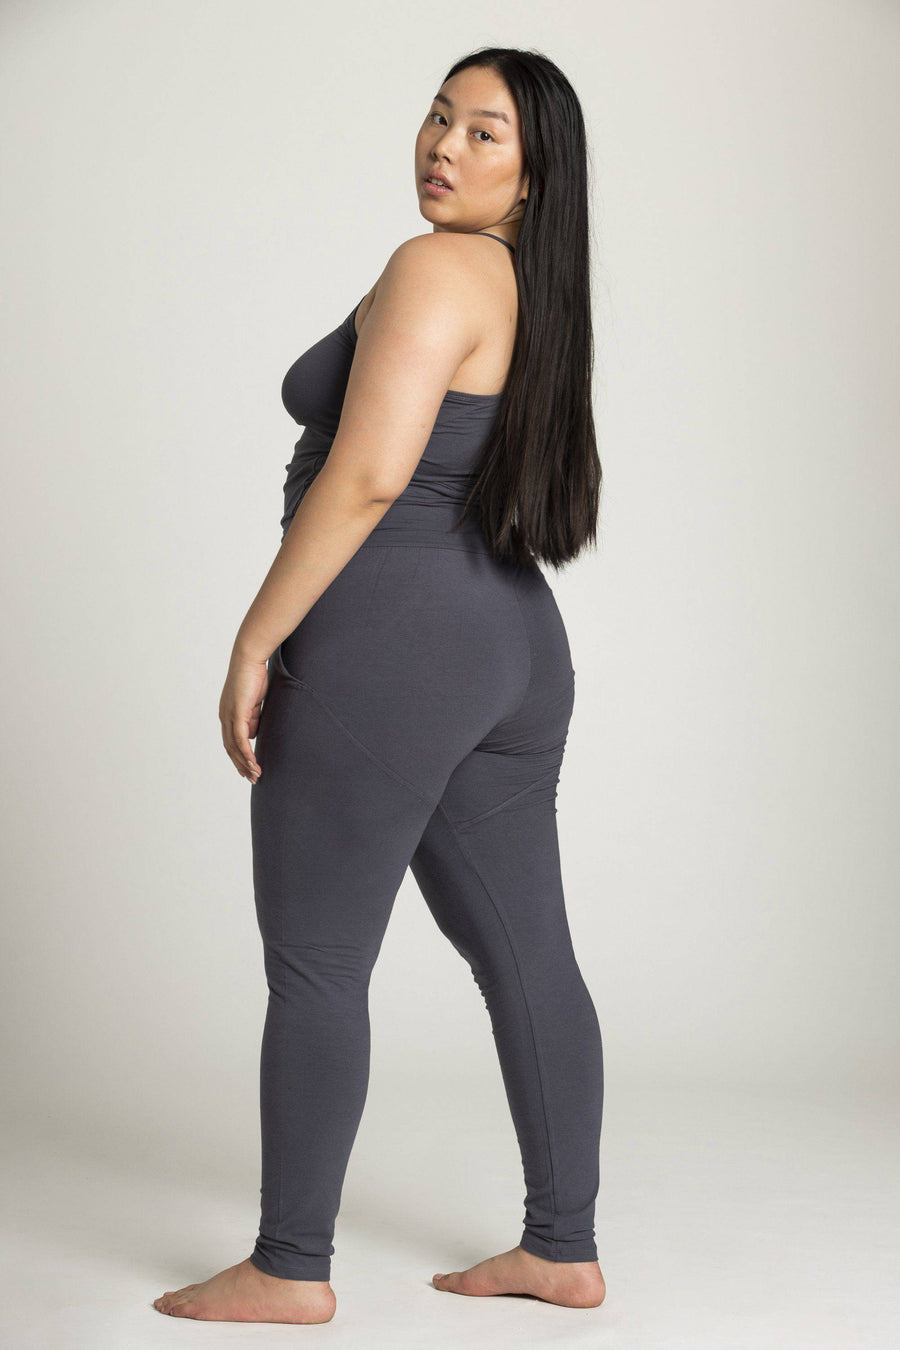 Long Yoga Jumpsuit - womens clothing - Ripple Yoga Wear